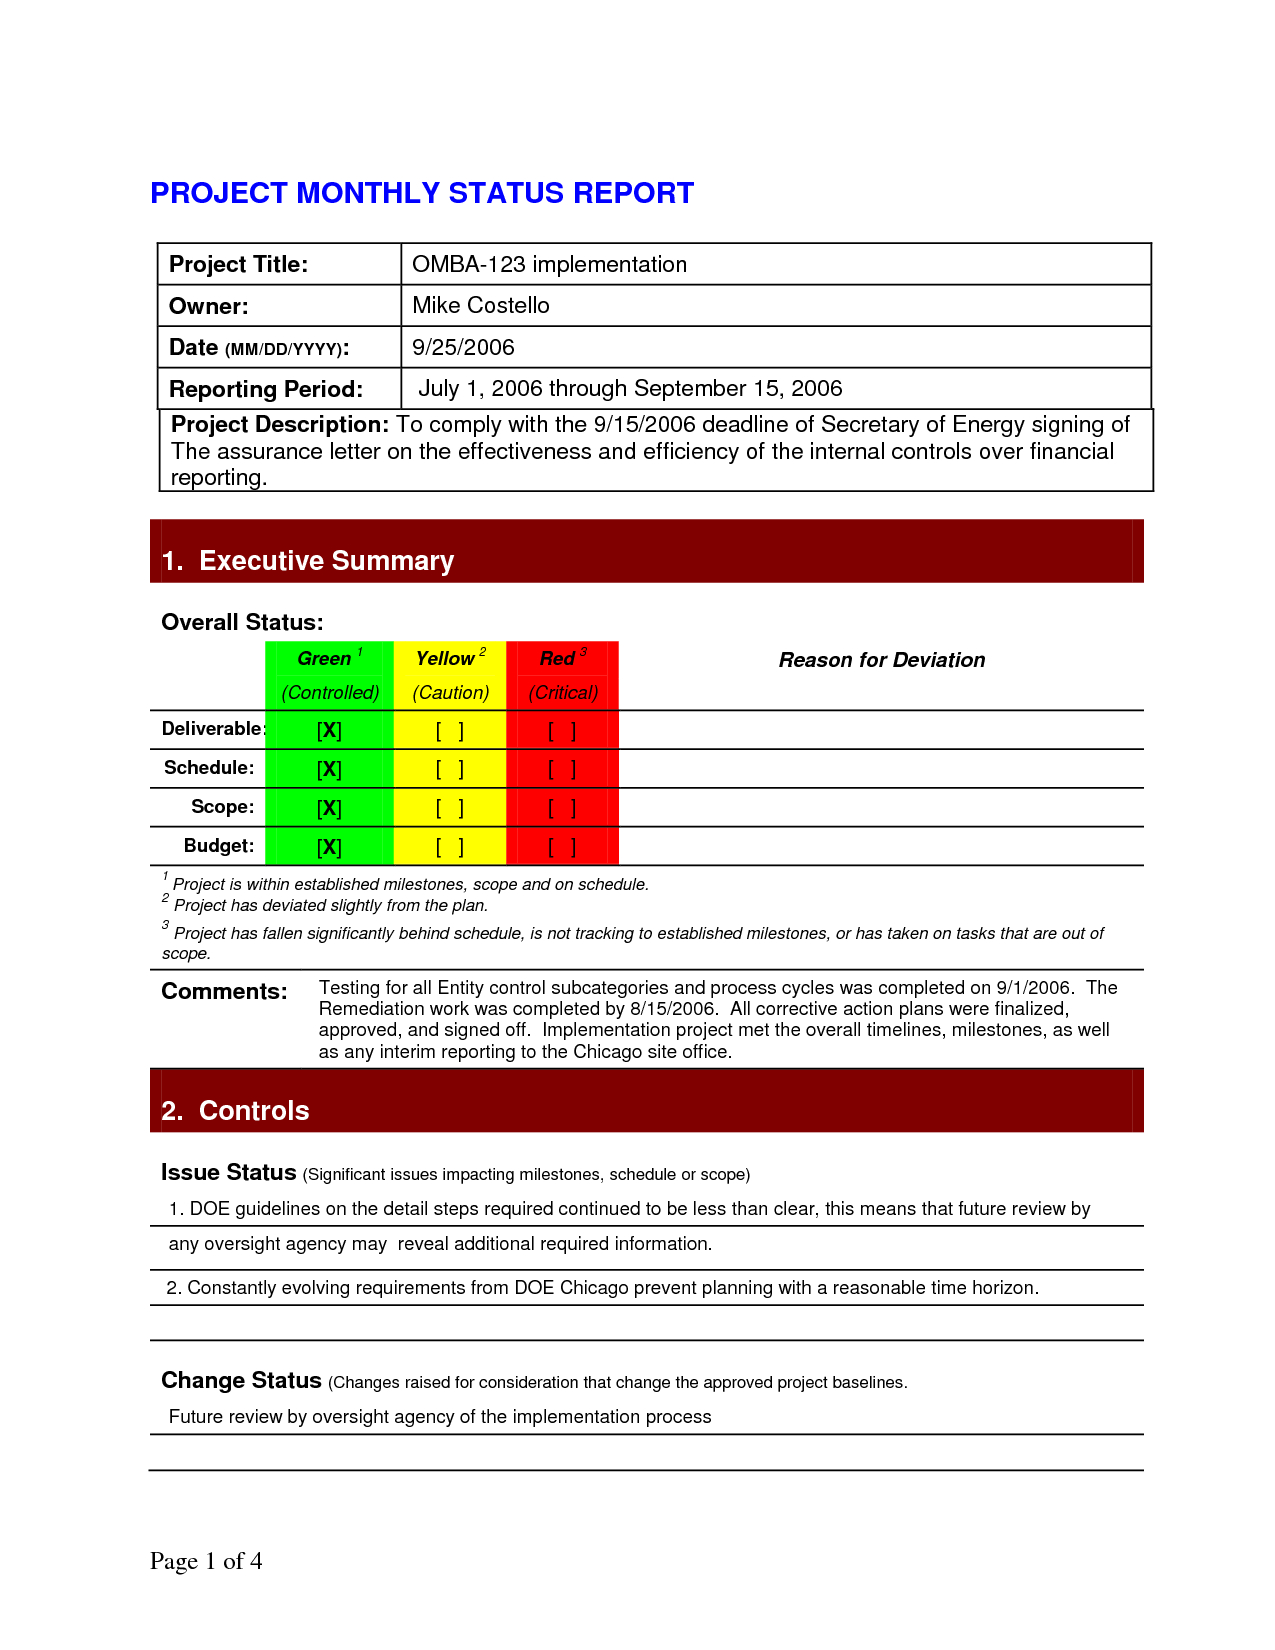 Pinlesedi Matlholwa On Templates | Project Status Report For Project Daily Status Report Template